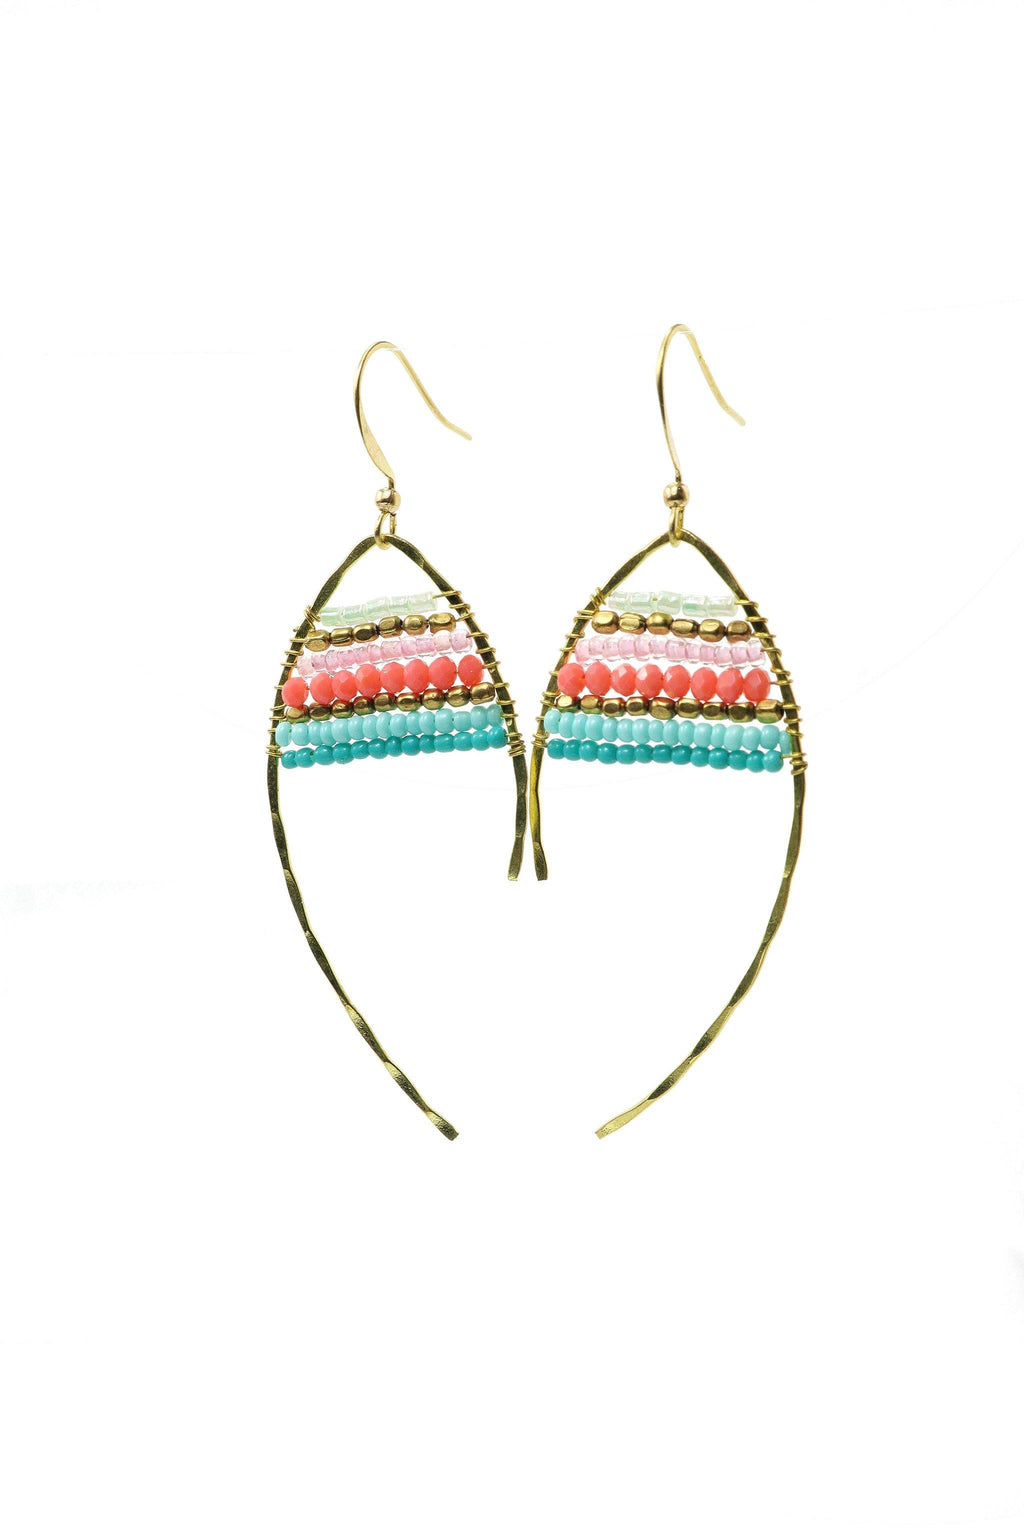 These are statement fish-shaped brass beaded earrings in shades of turquoise and pink.  They feature brass and acrylic and glass beads. They are handmade with love in Thailand.   This is a Fairtrade Product.